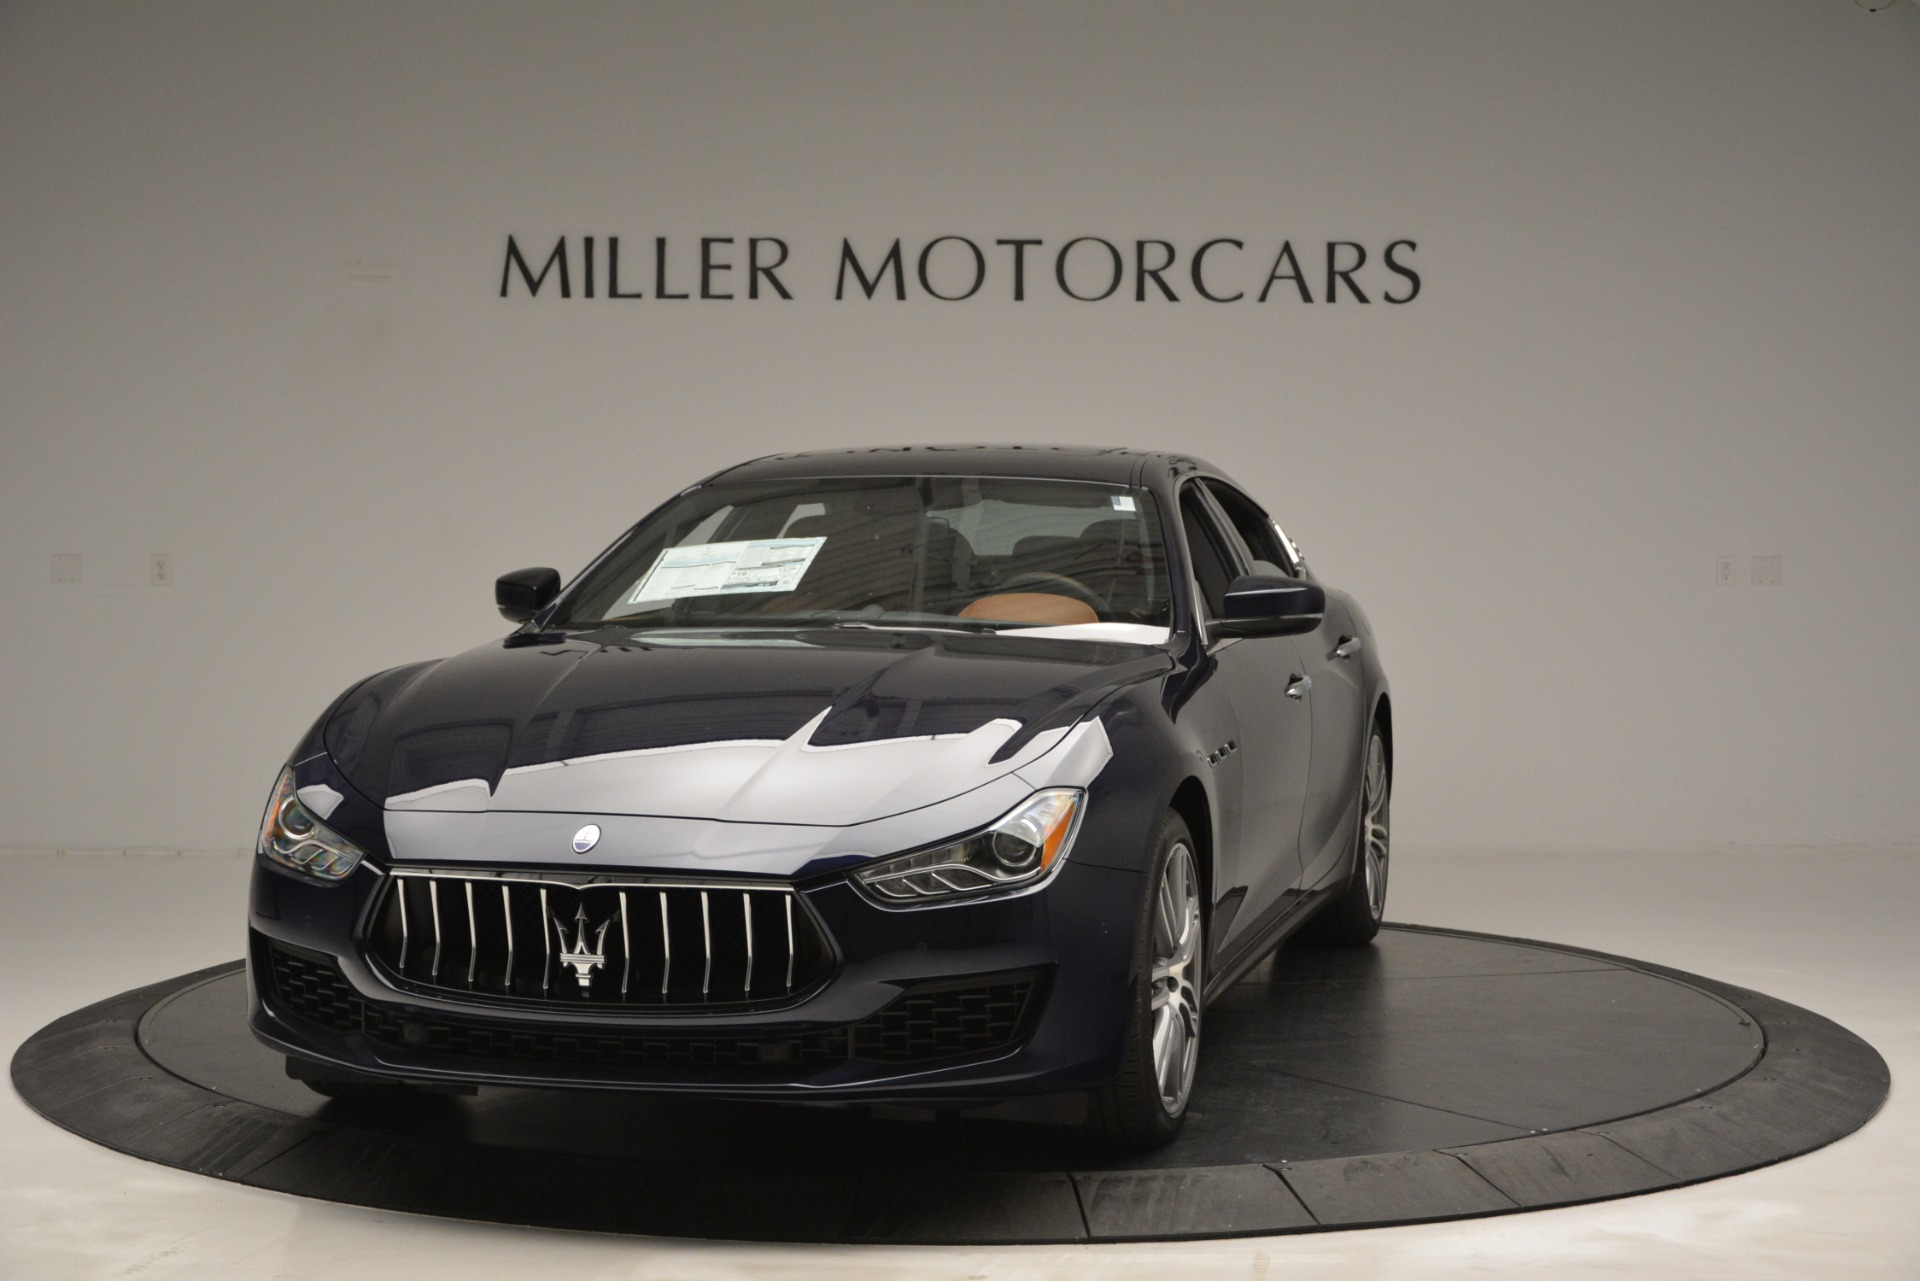 New 2019 Maserati Ghibli S Q4 for sale Sold at Maserati of Greenwich in Greenwich CT 06830 1